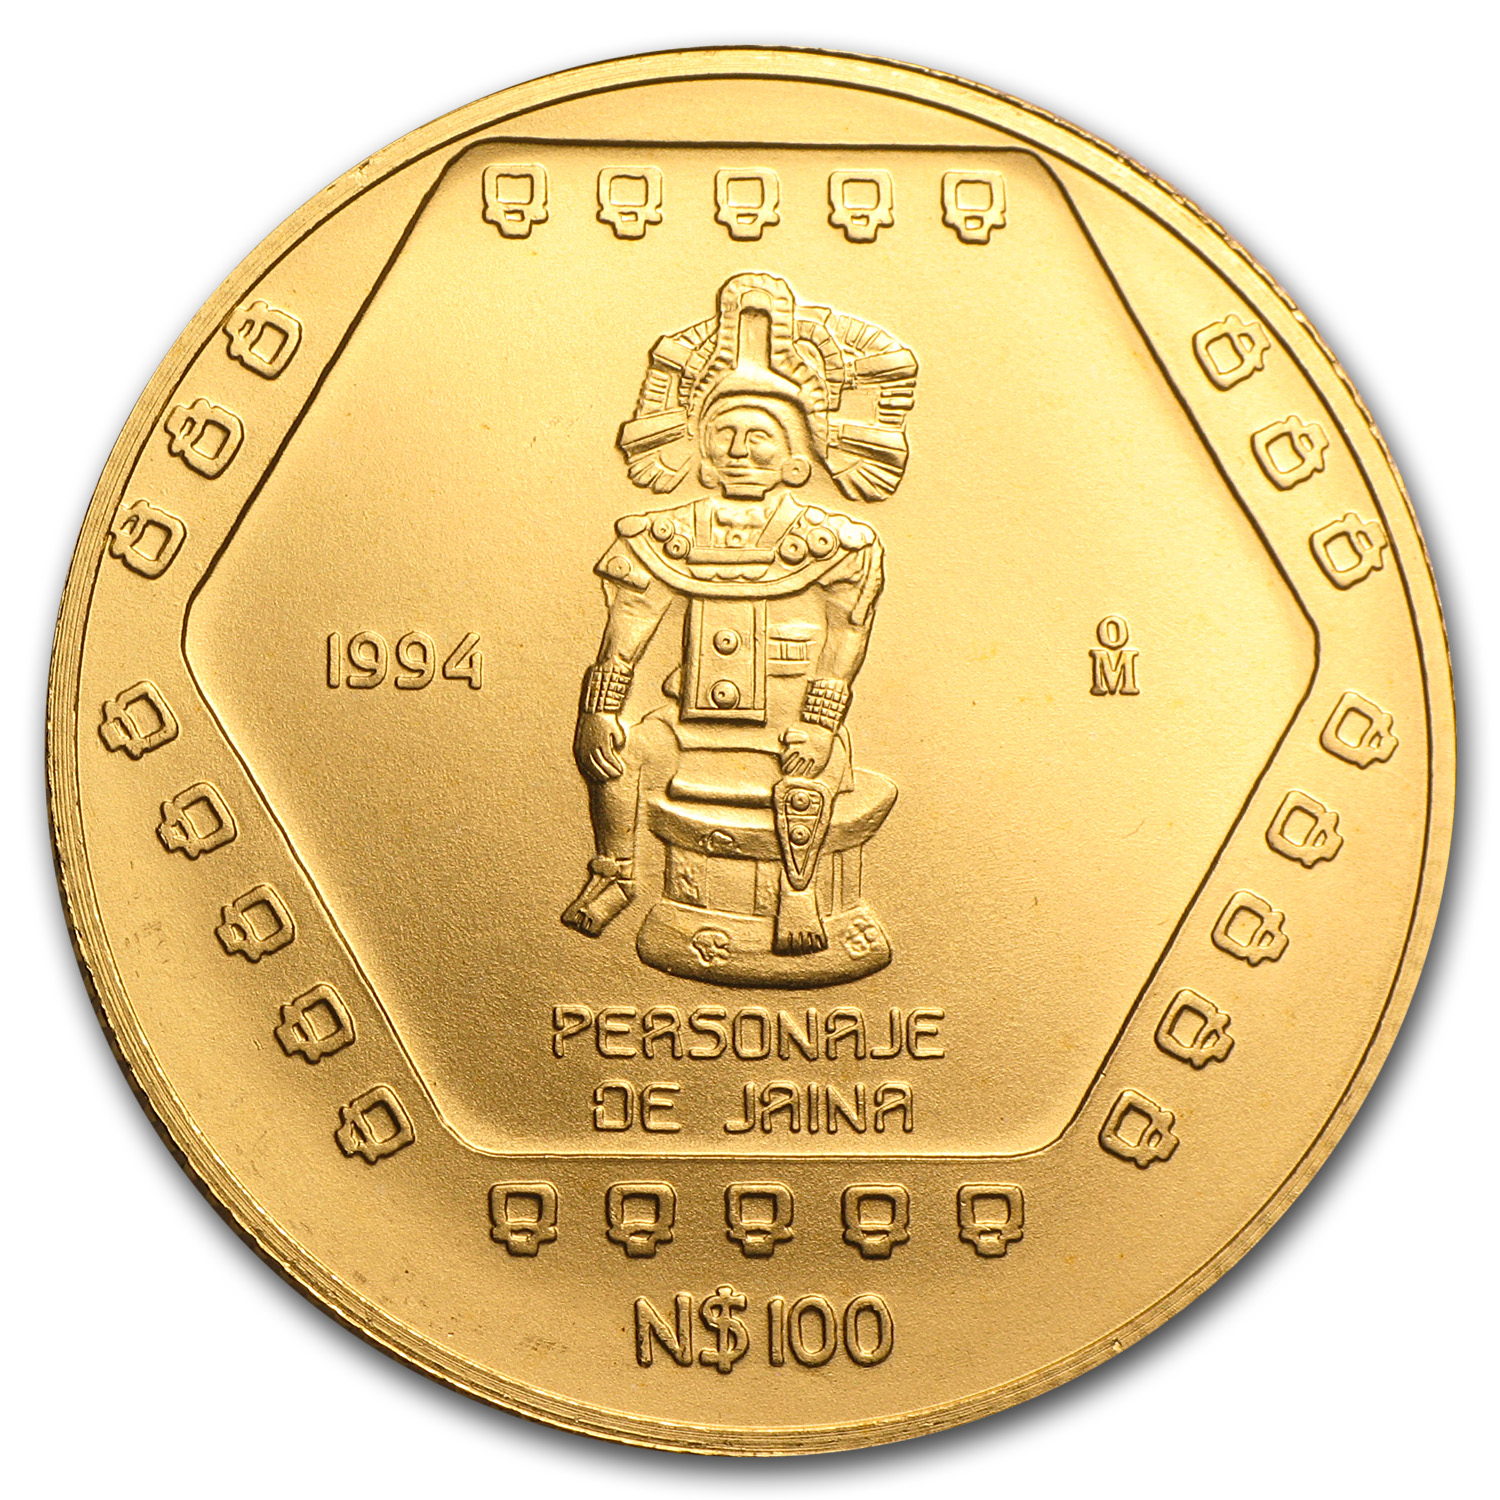 1994 Mexico 100 Pesos Personaje De Jaina Brilliant Uncirculated